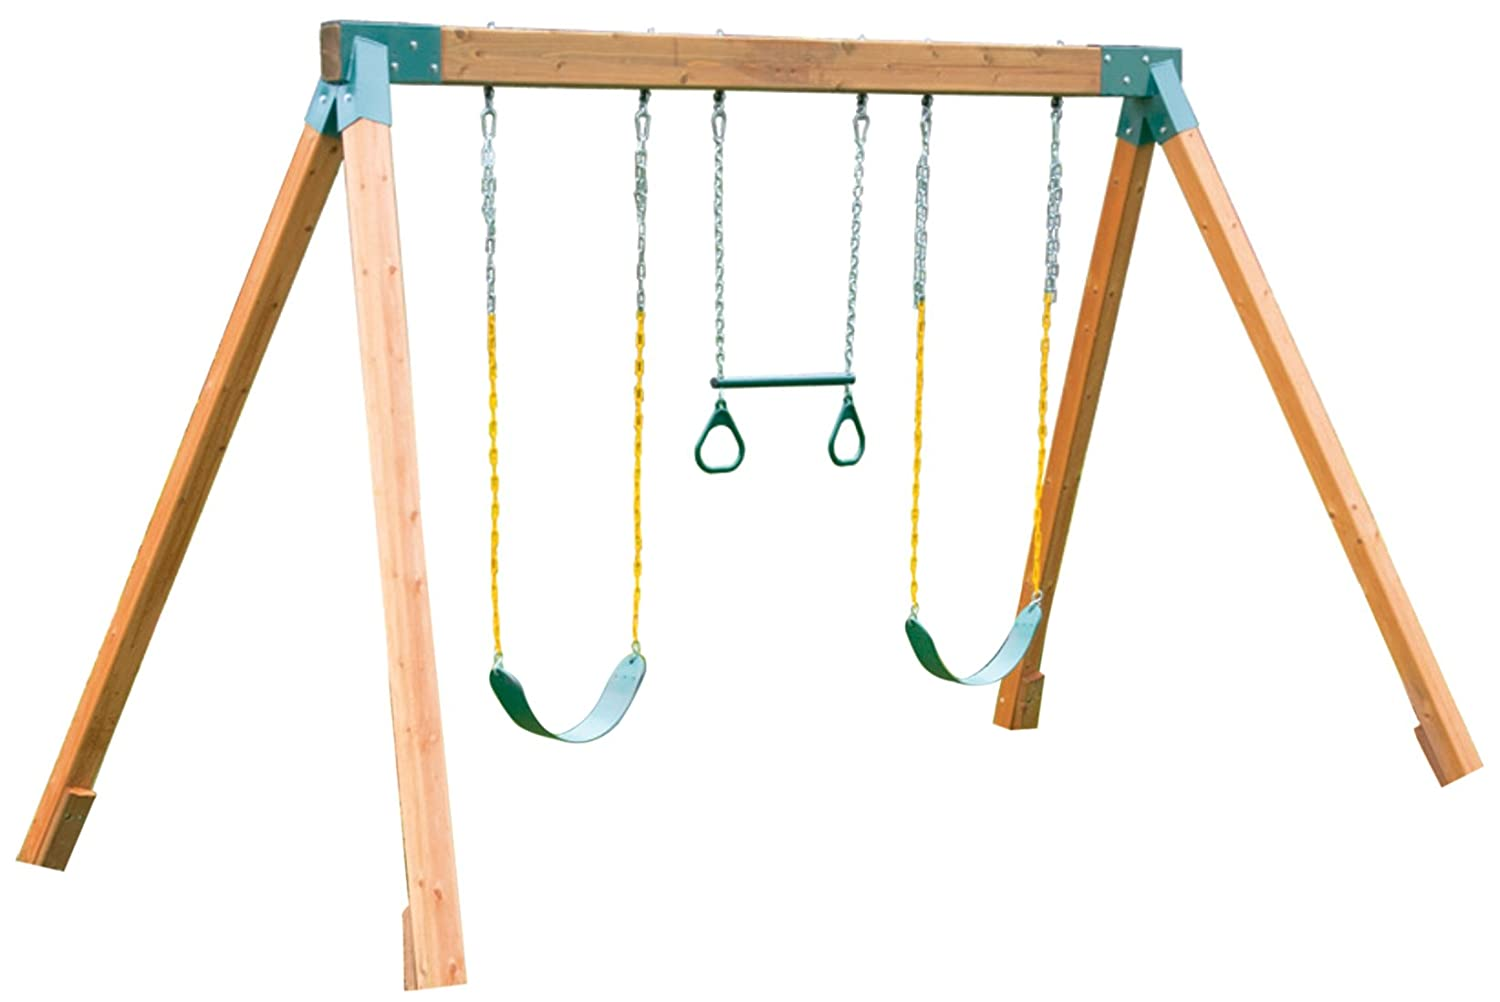 Best small swing sets for small yards reviews top kids gear for Small wooden swing sets